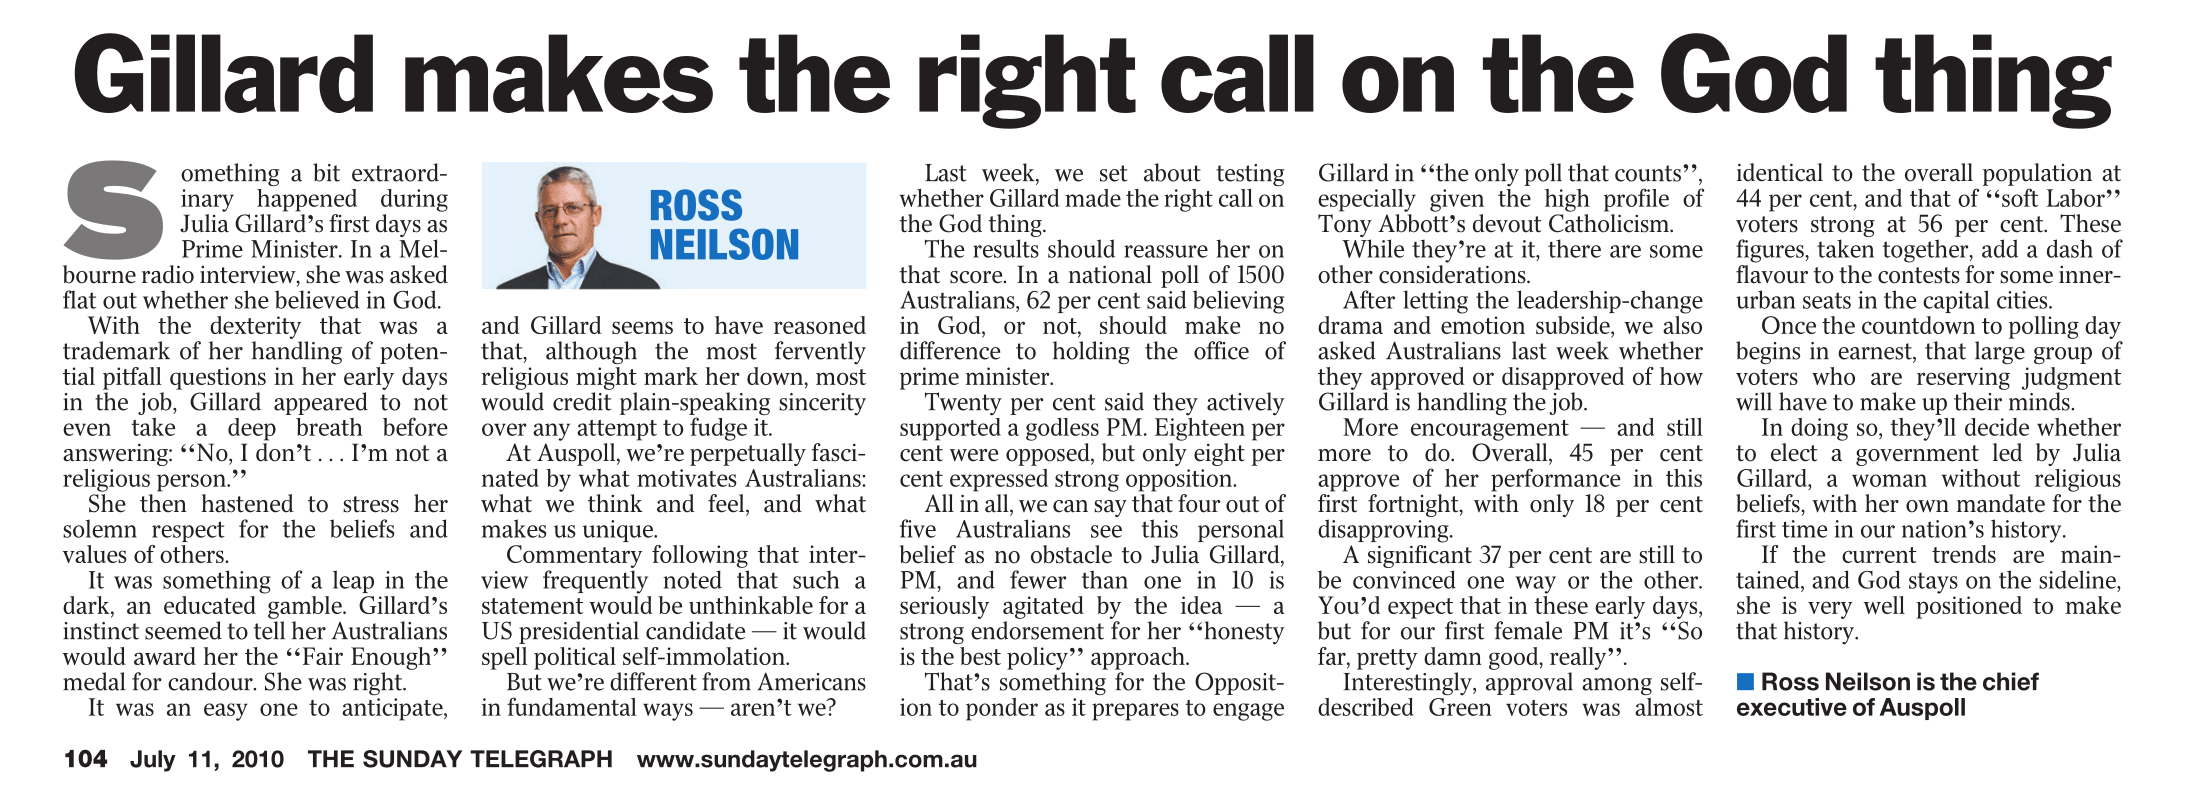 Gillard makes the right call on the God thing